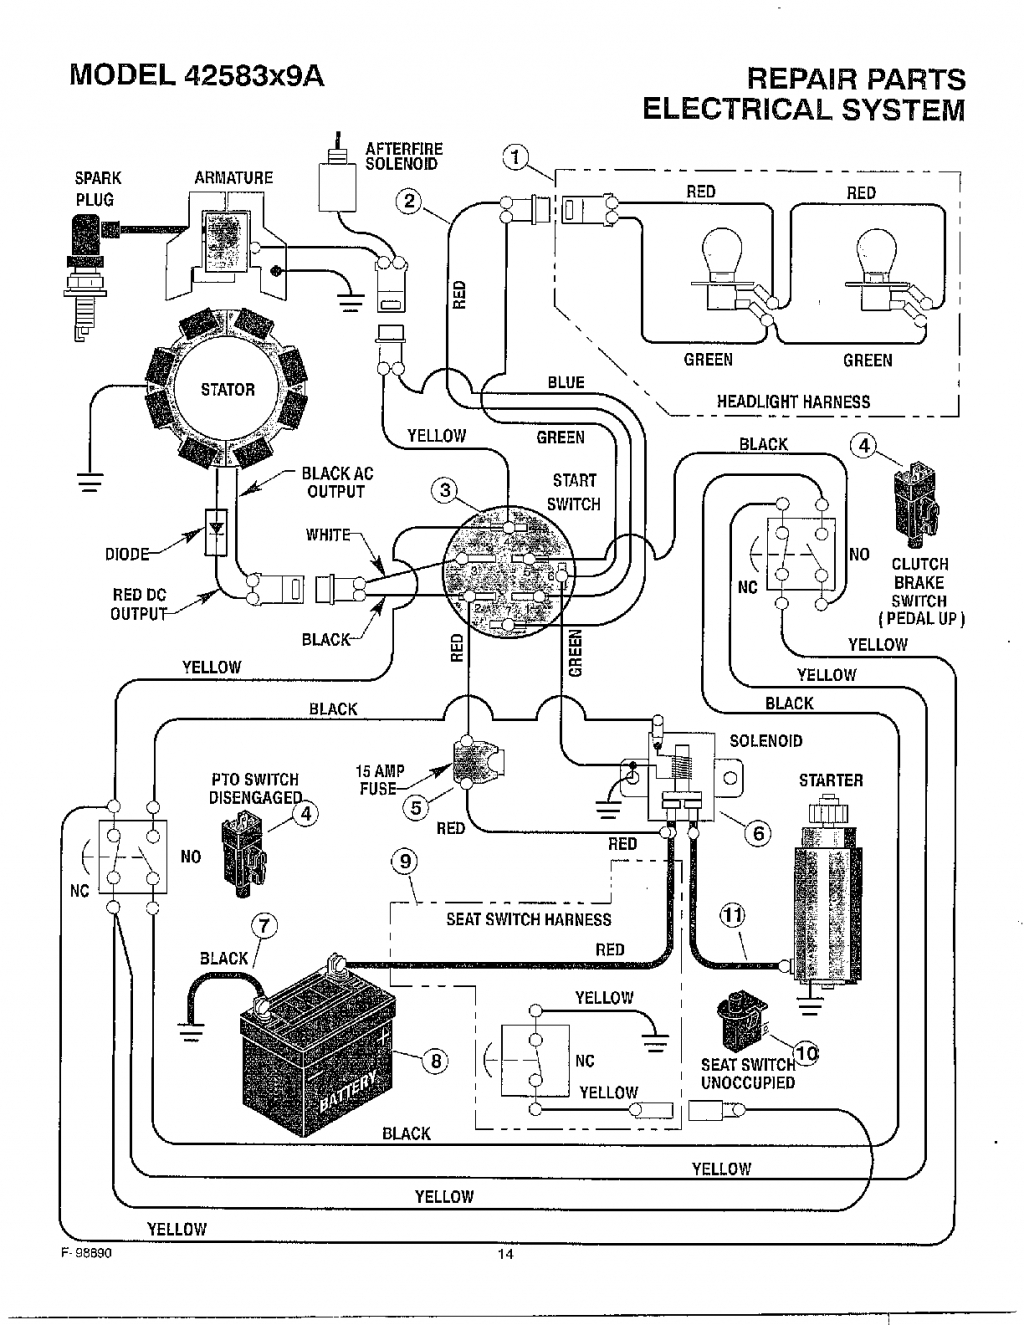 wiring diagram for murray riding lawn mower solenoid ... 1 2 hp murray lawn mower wiring diagram